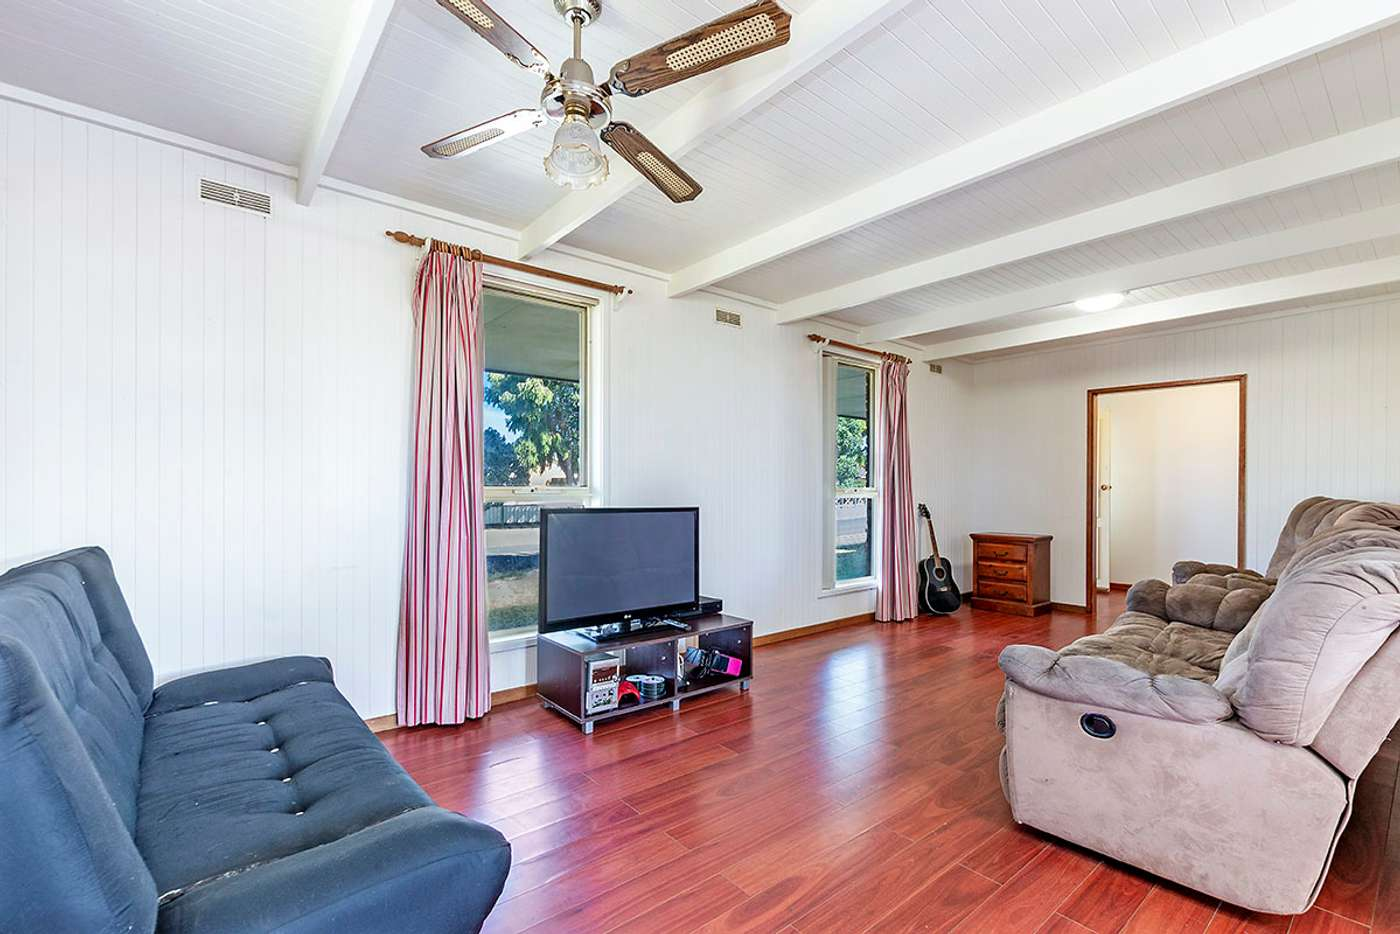 Sixth view of Homely house listing, 96 Barkly Street, Portland VIC 3305